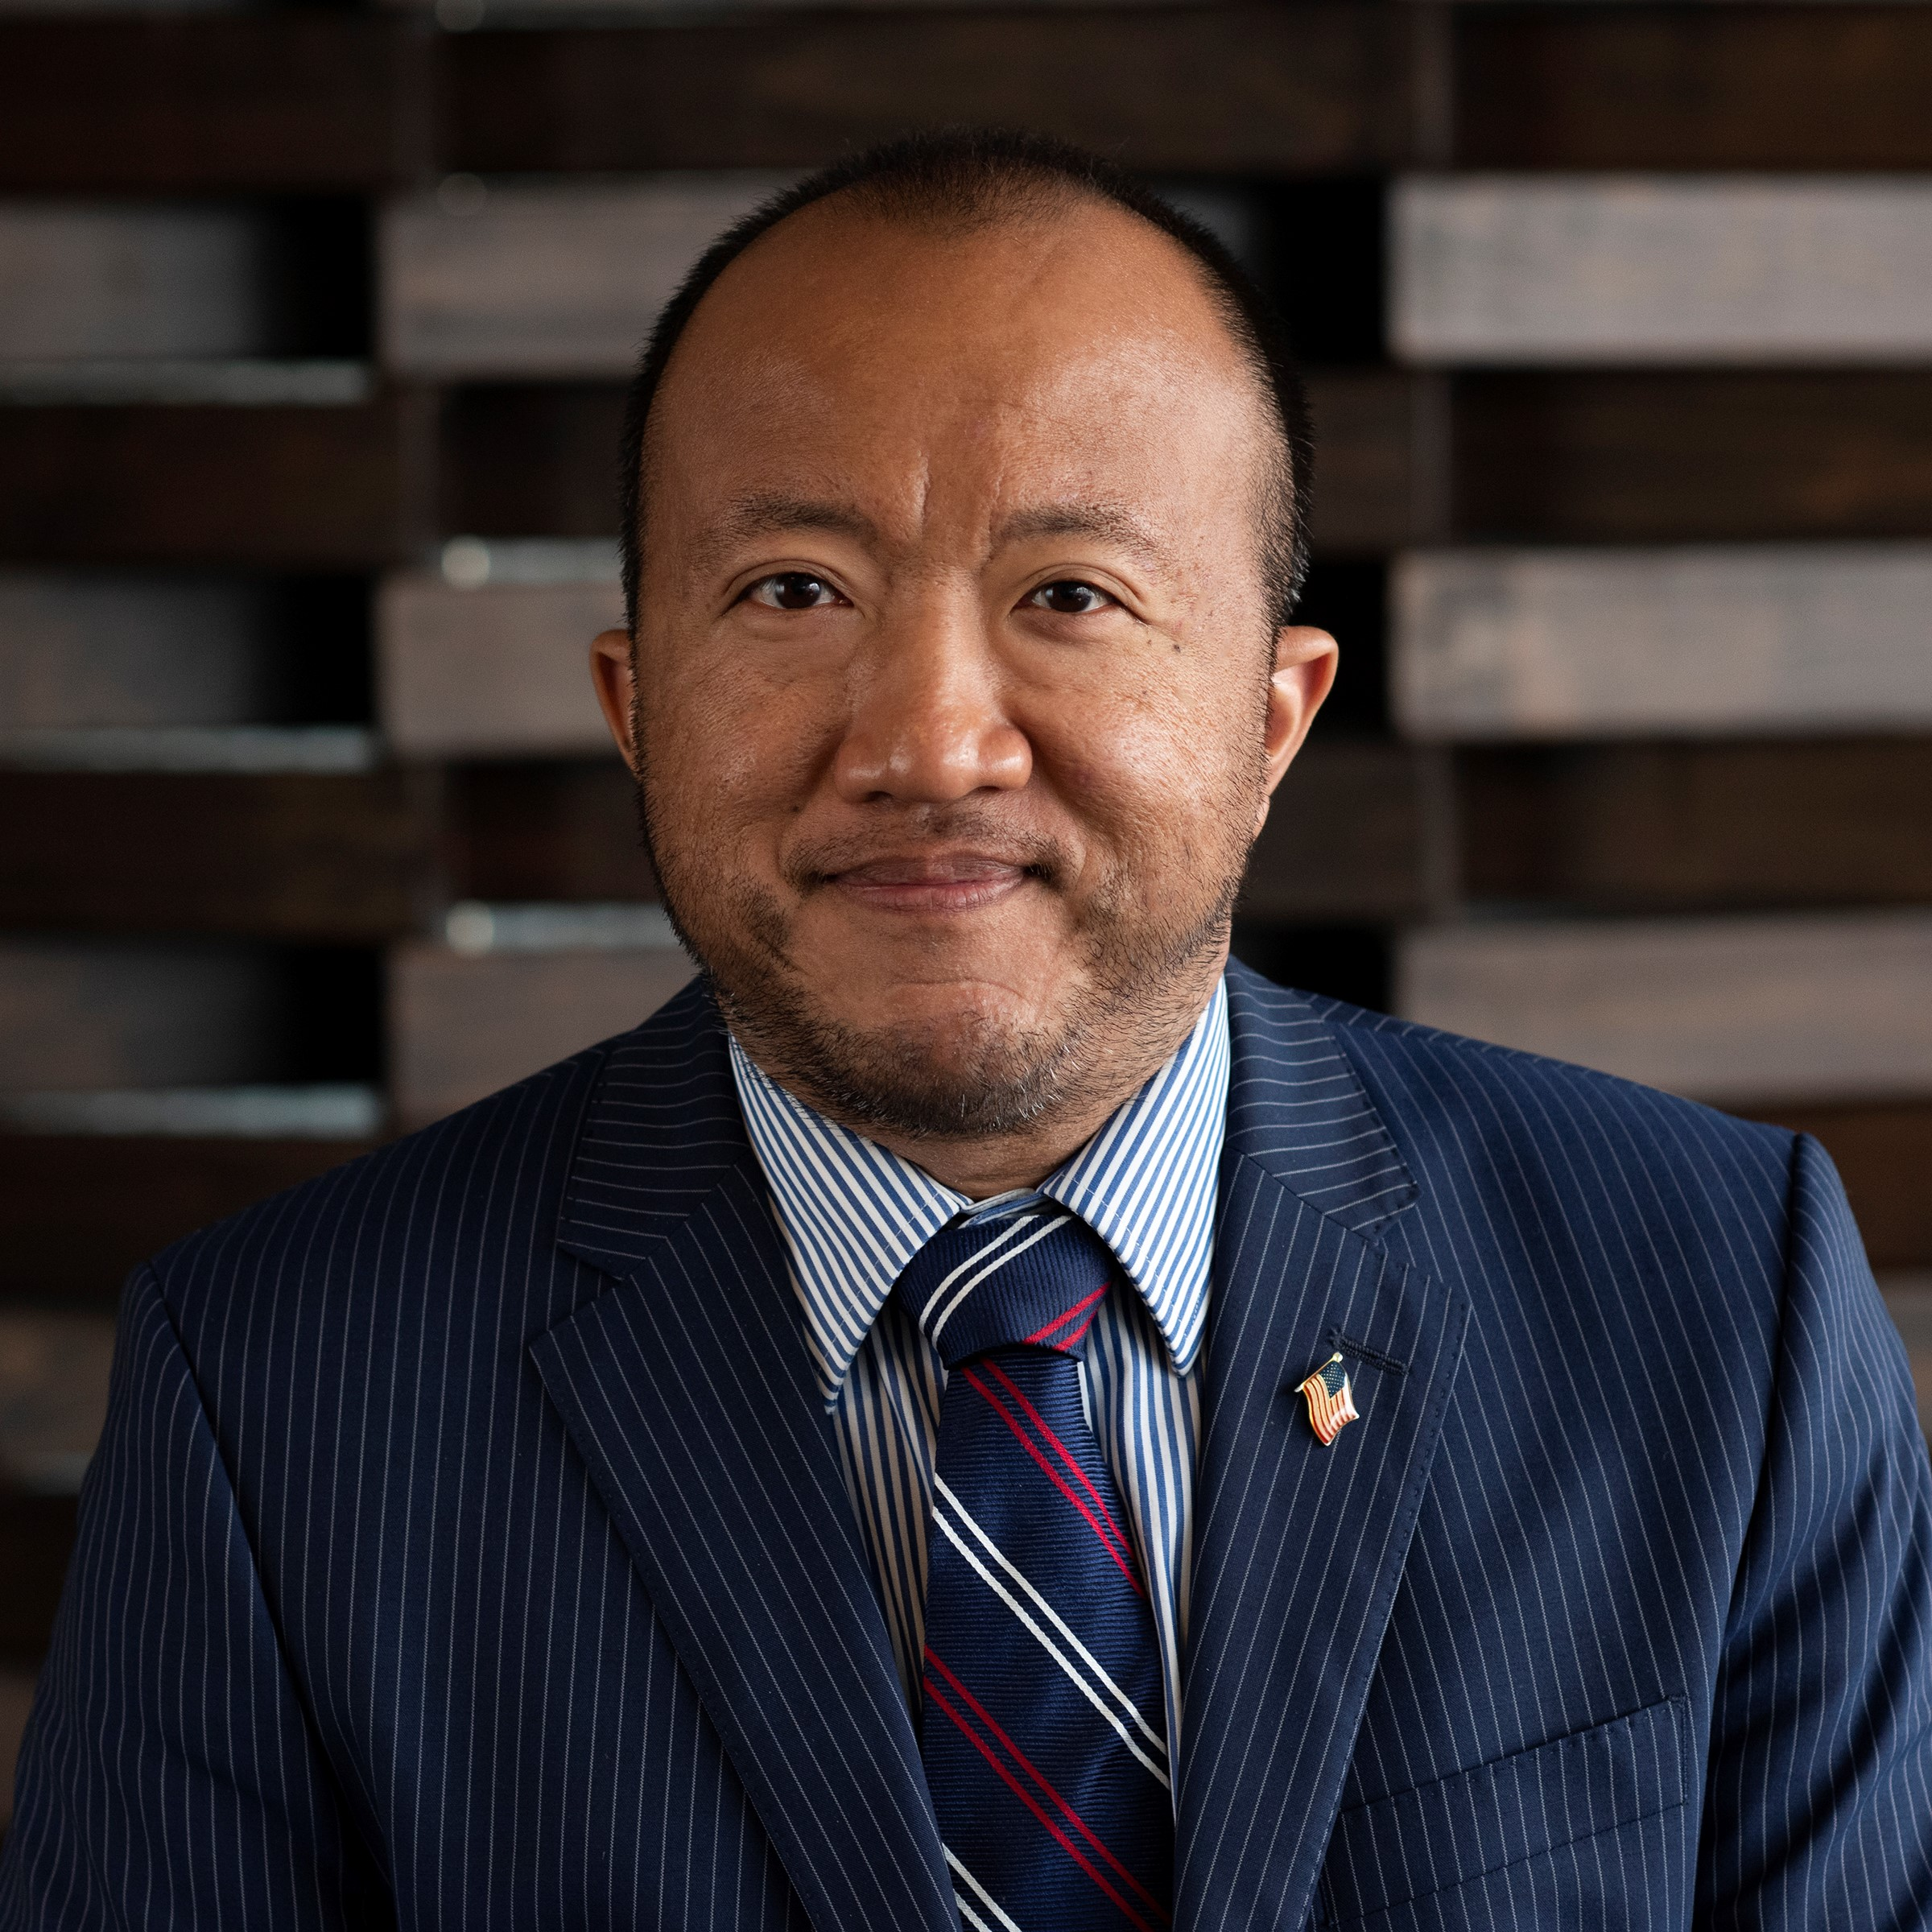 Michael Chow, Research Director